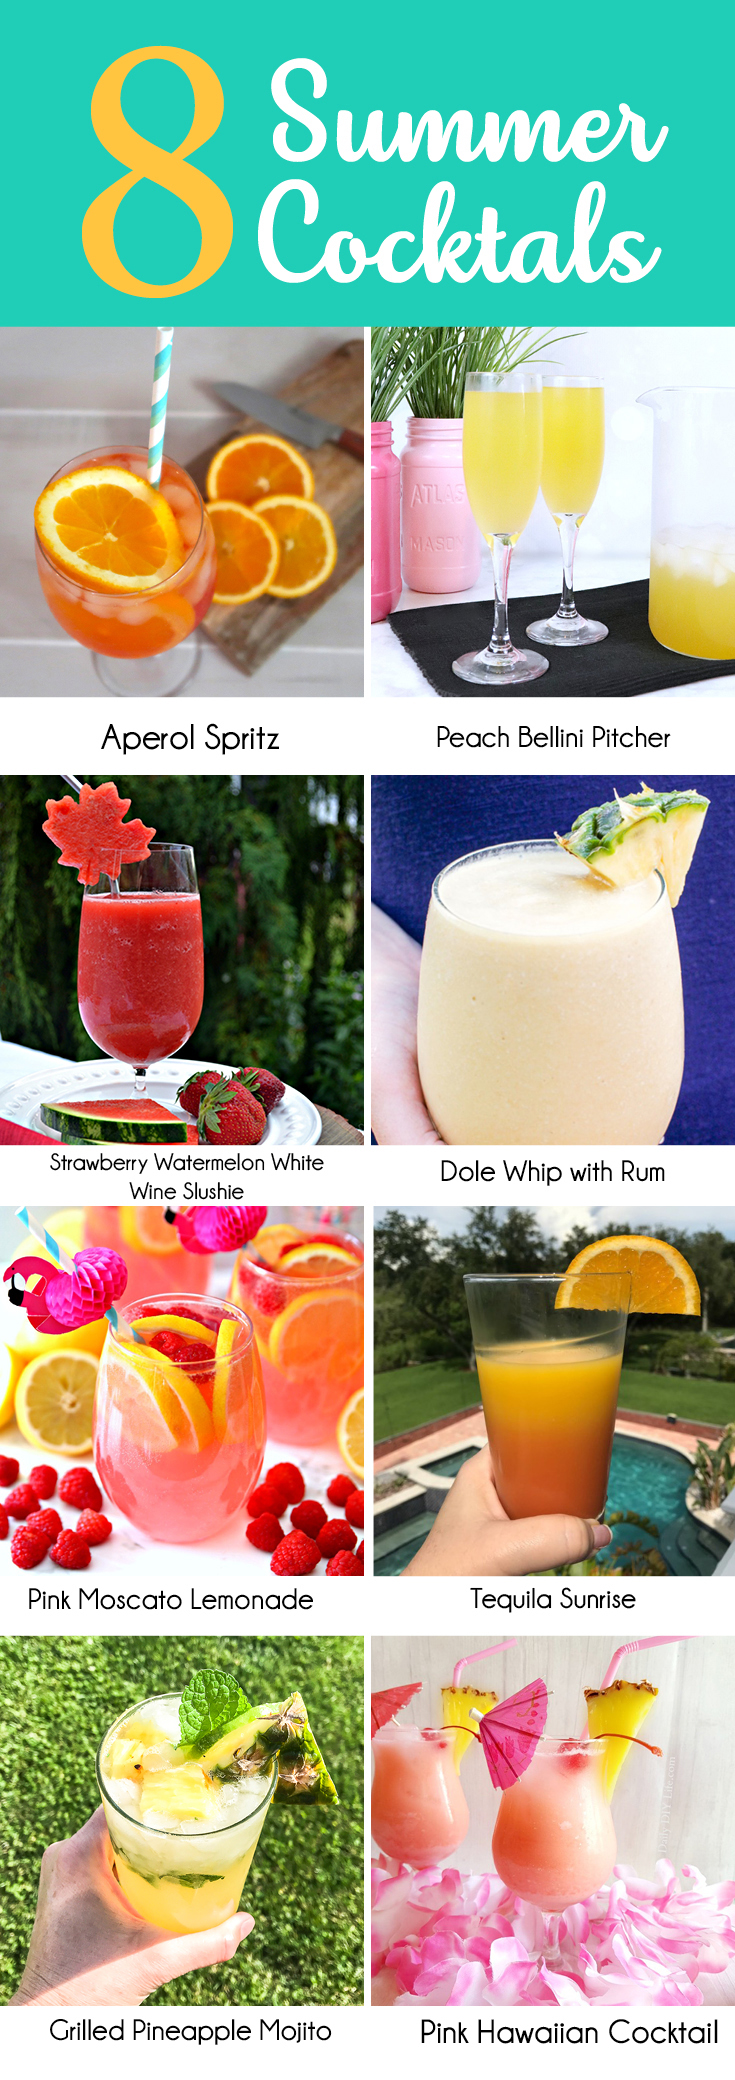 8 Summer Cocktails.jpg